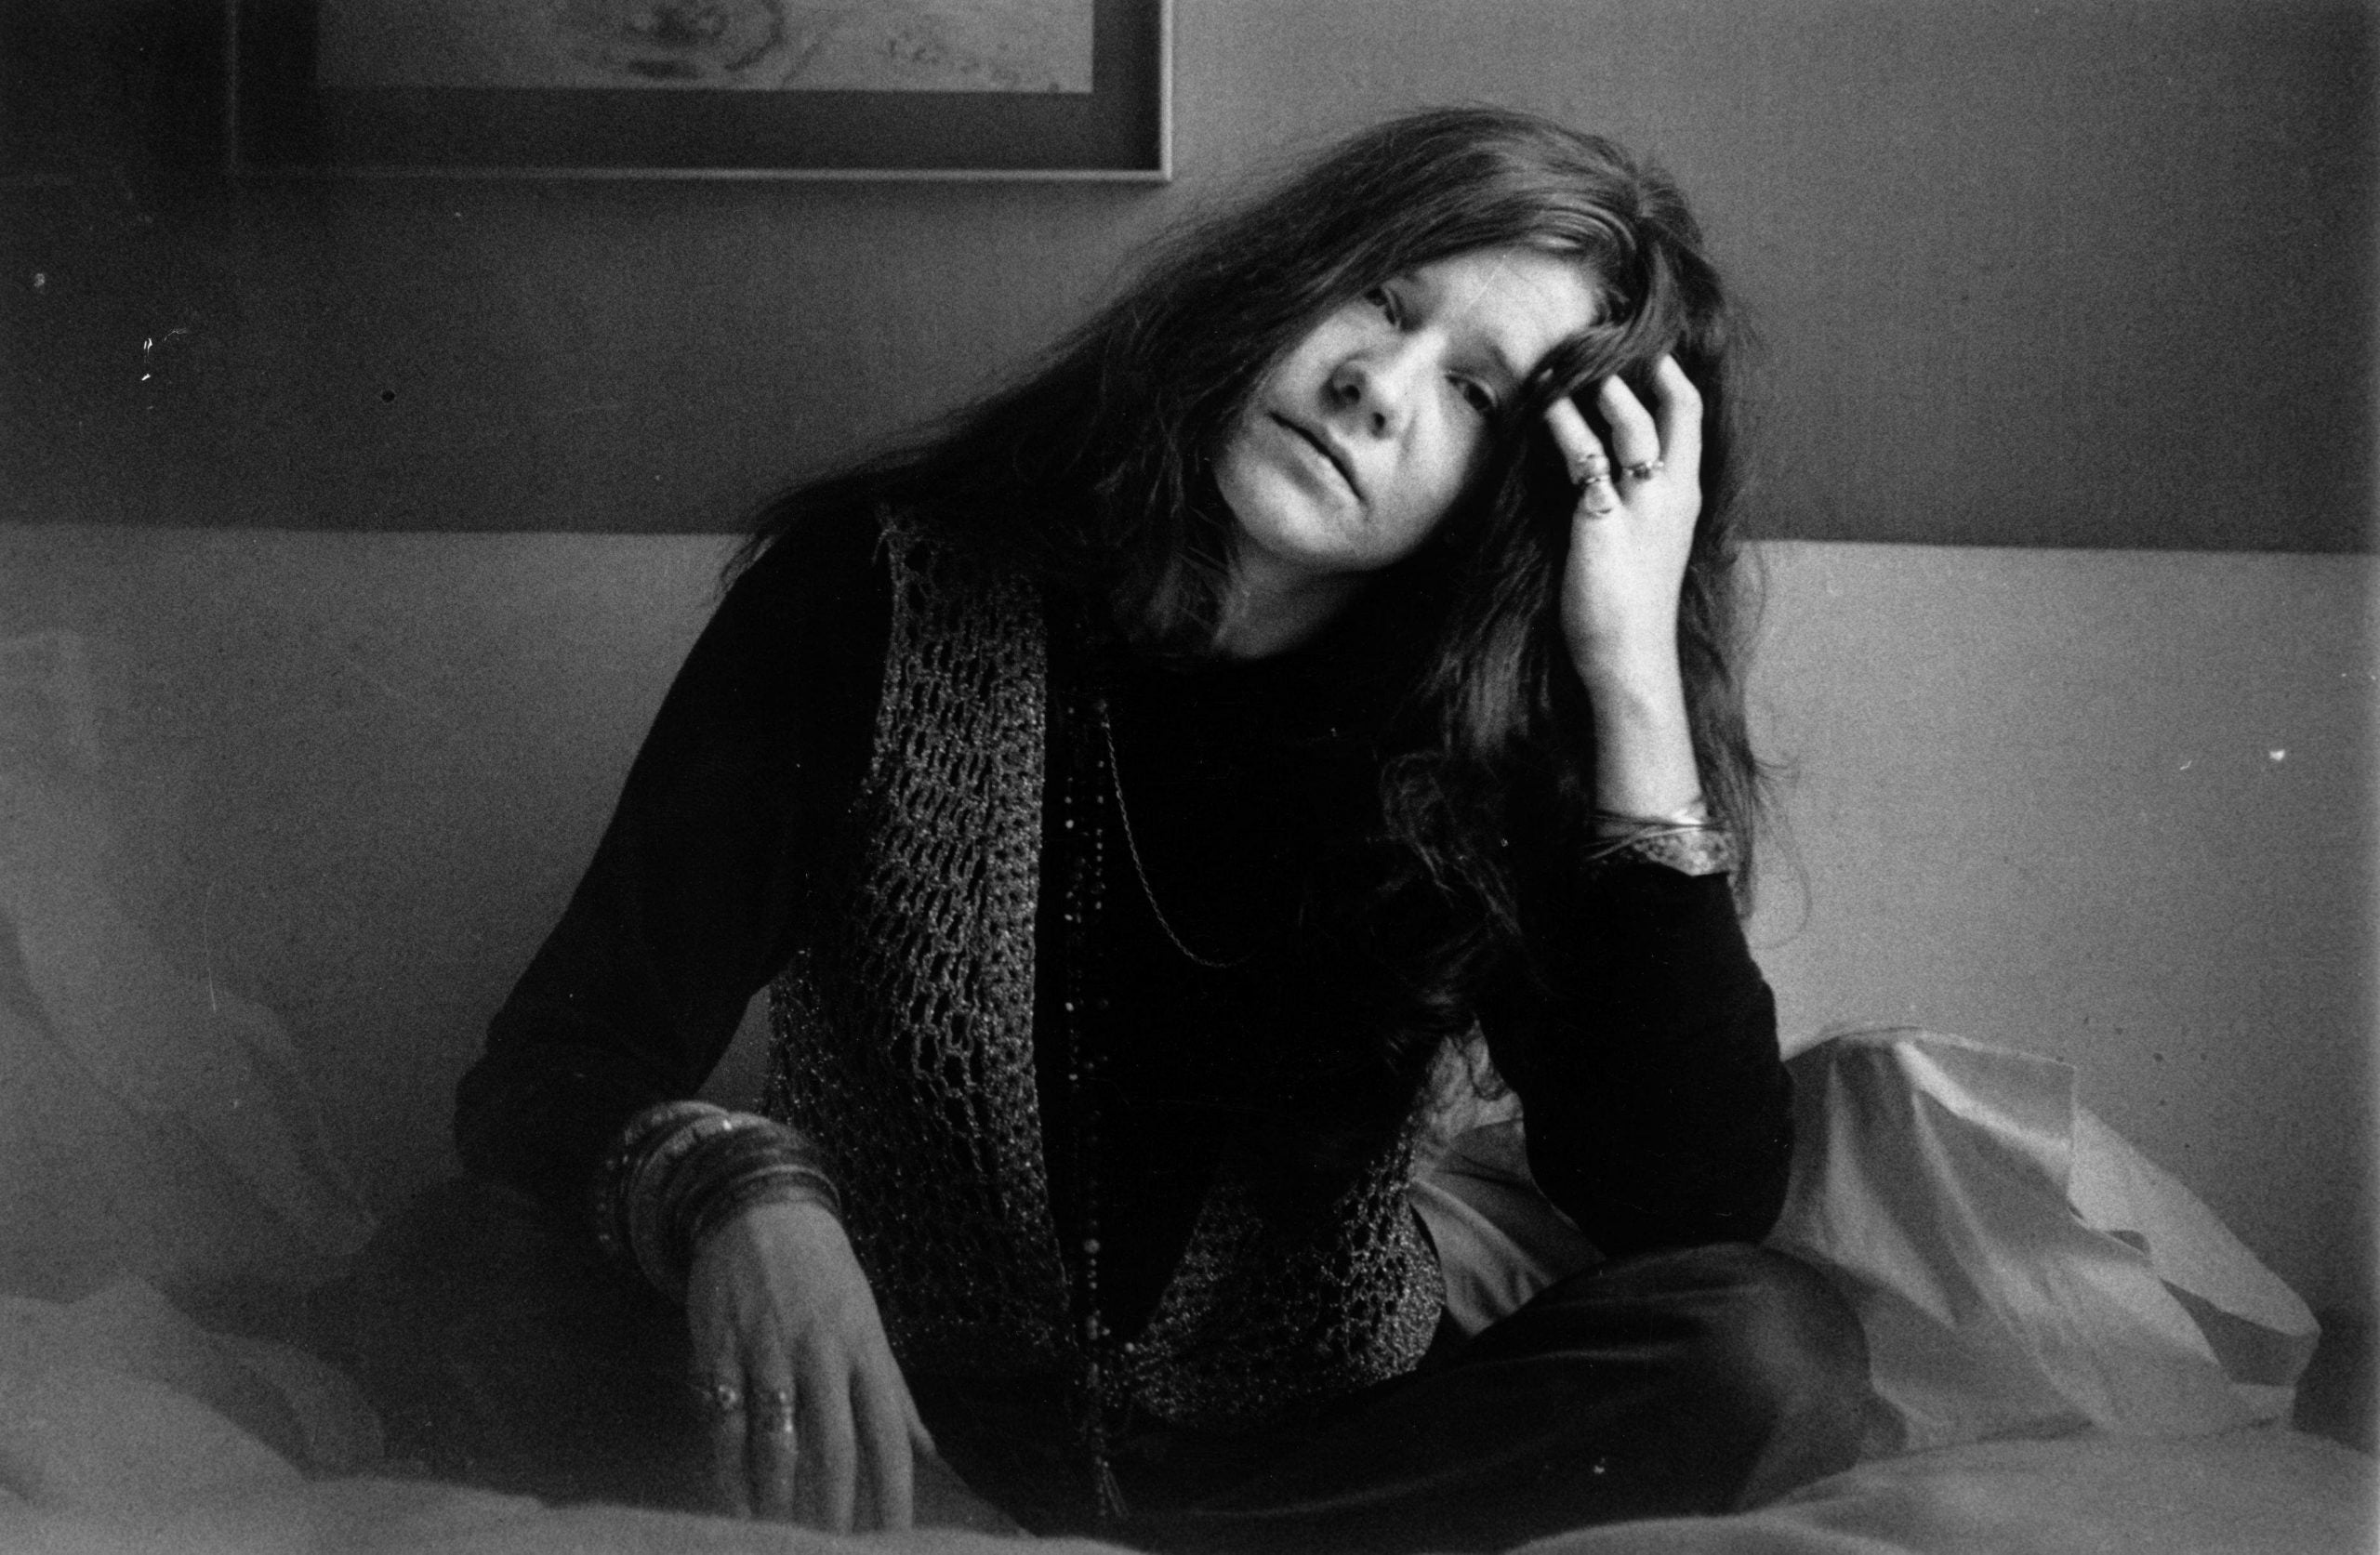 """Bonnie Greer on Cheap Thrills and Janis Joplin: """"You could hear the bourbon in her veins"""""""